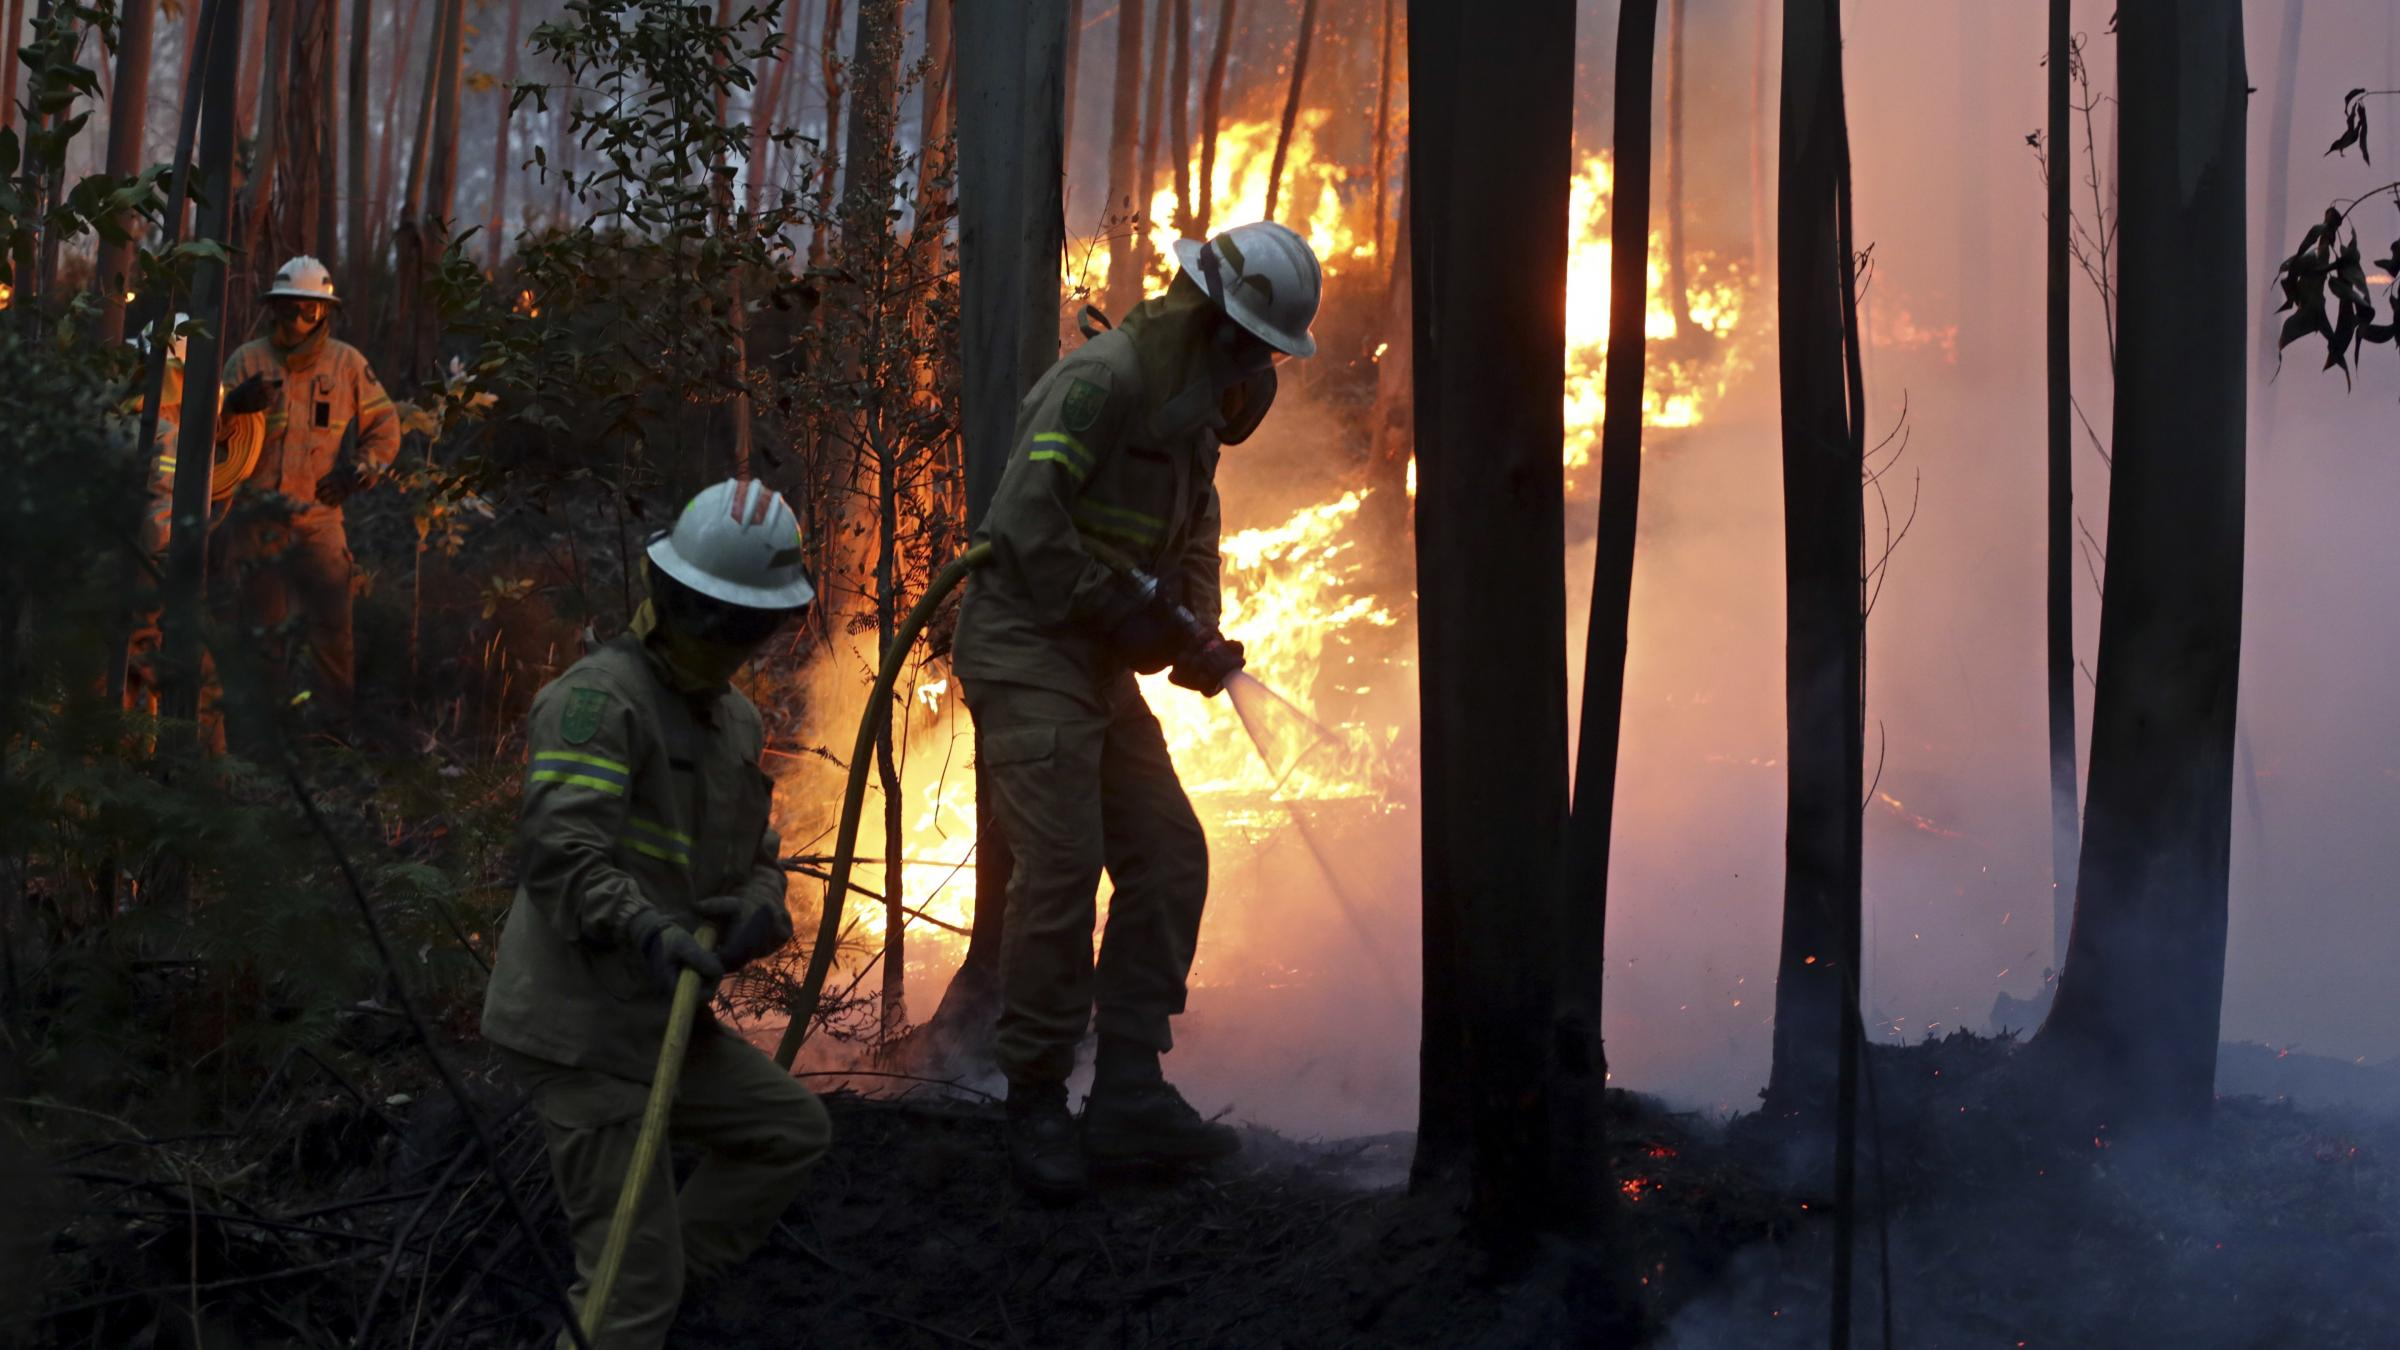 More than 20 dead from forest fires in central Portugal